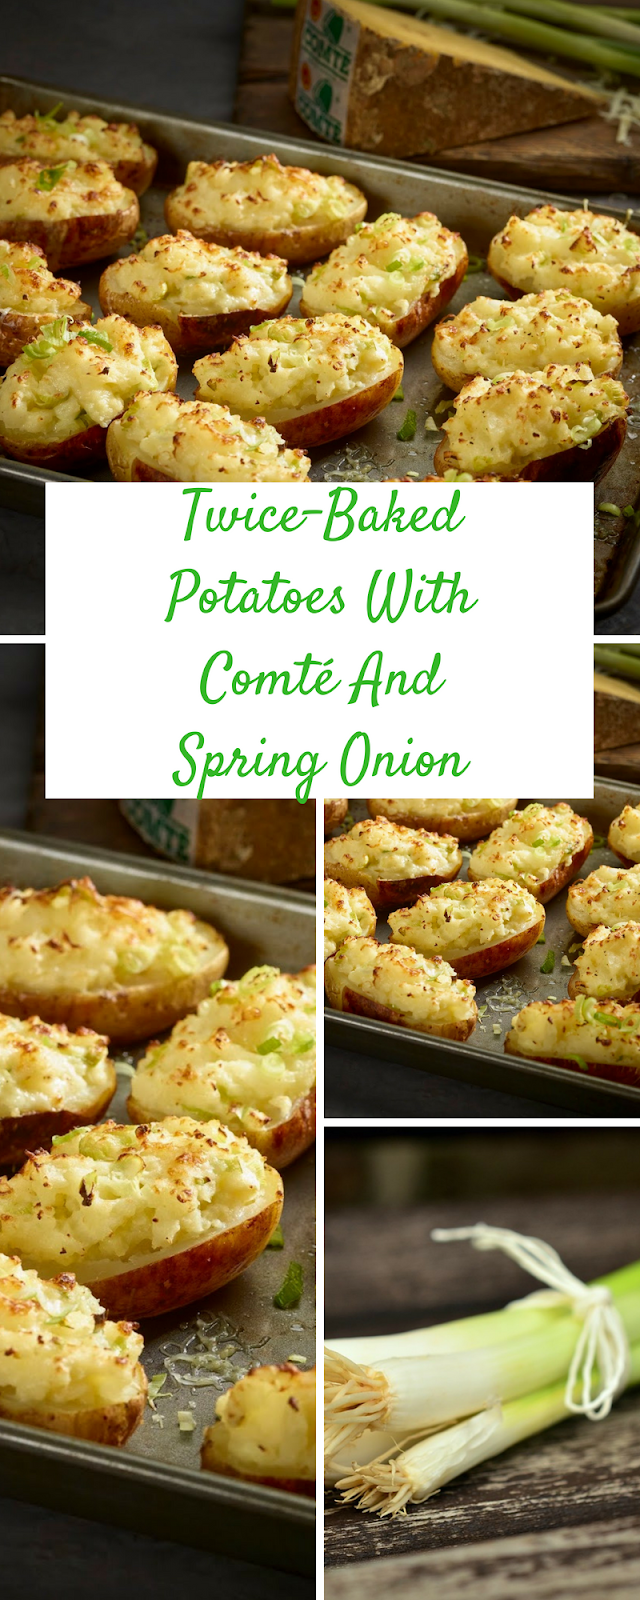 Twice-Baked Potatoes With Comté And Spring Onions